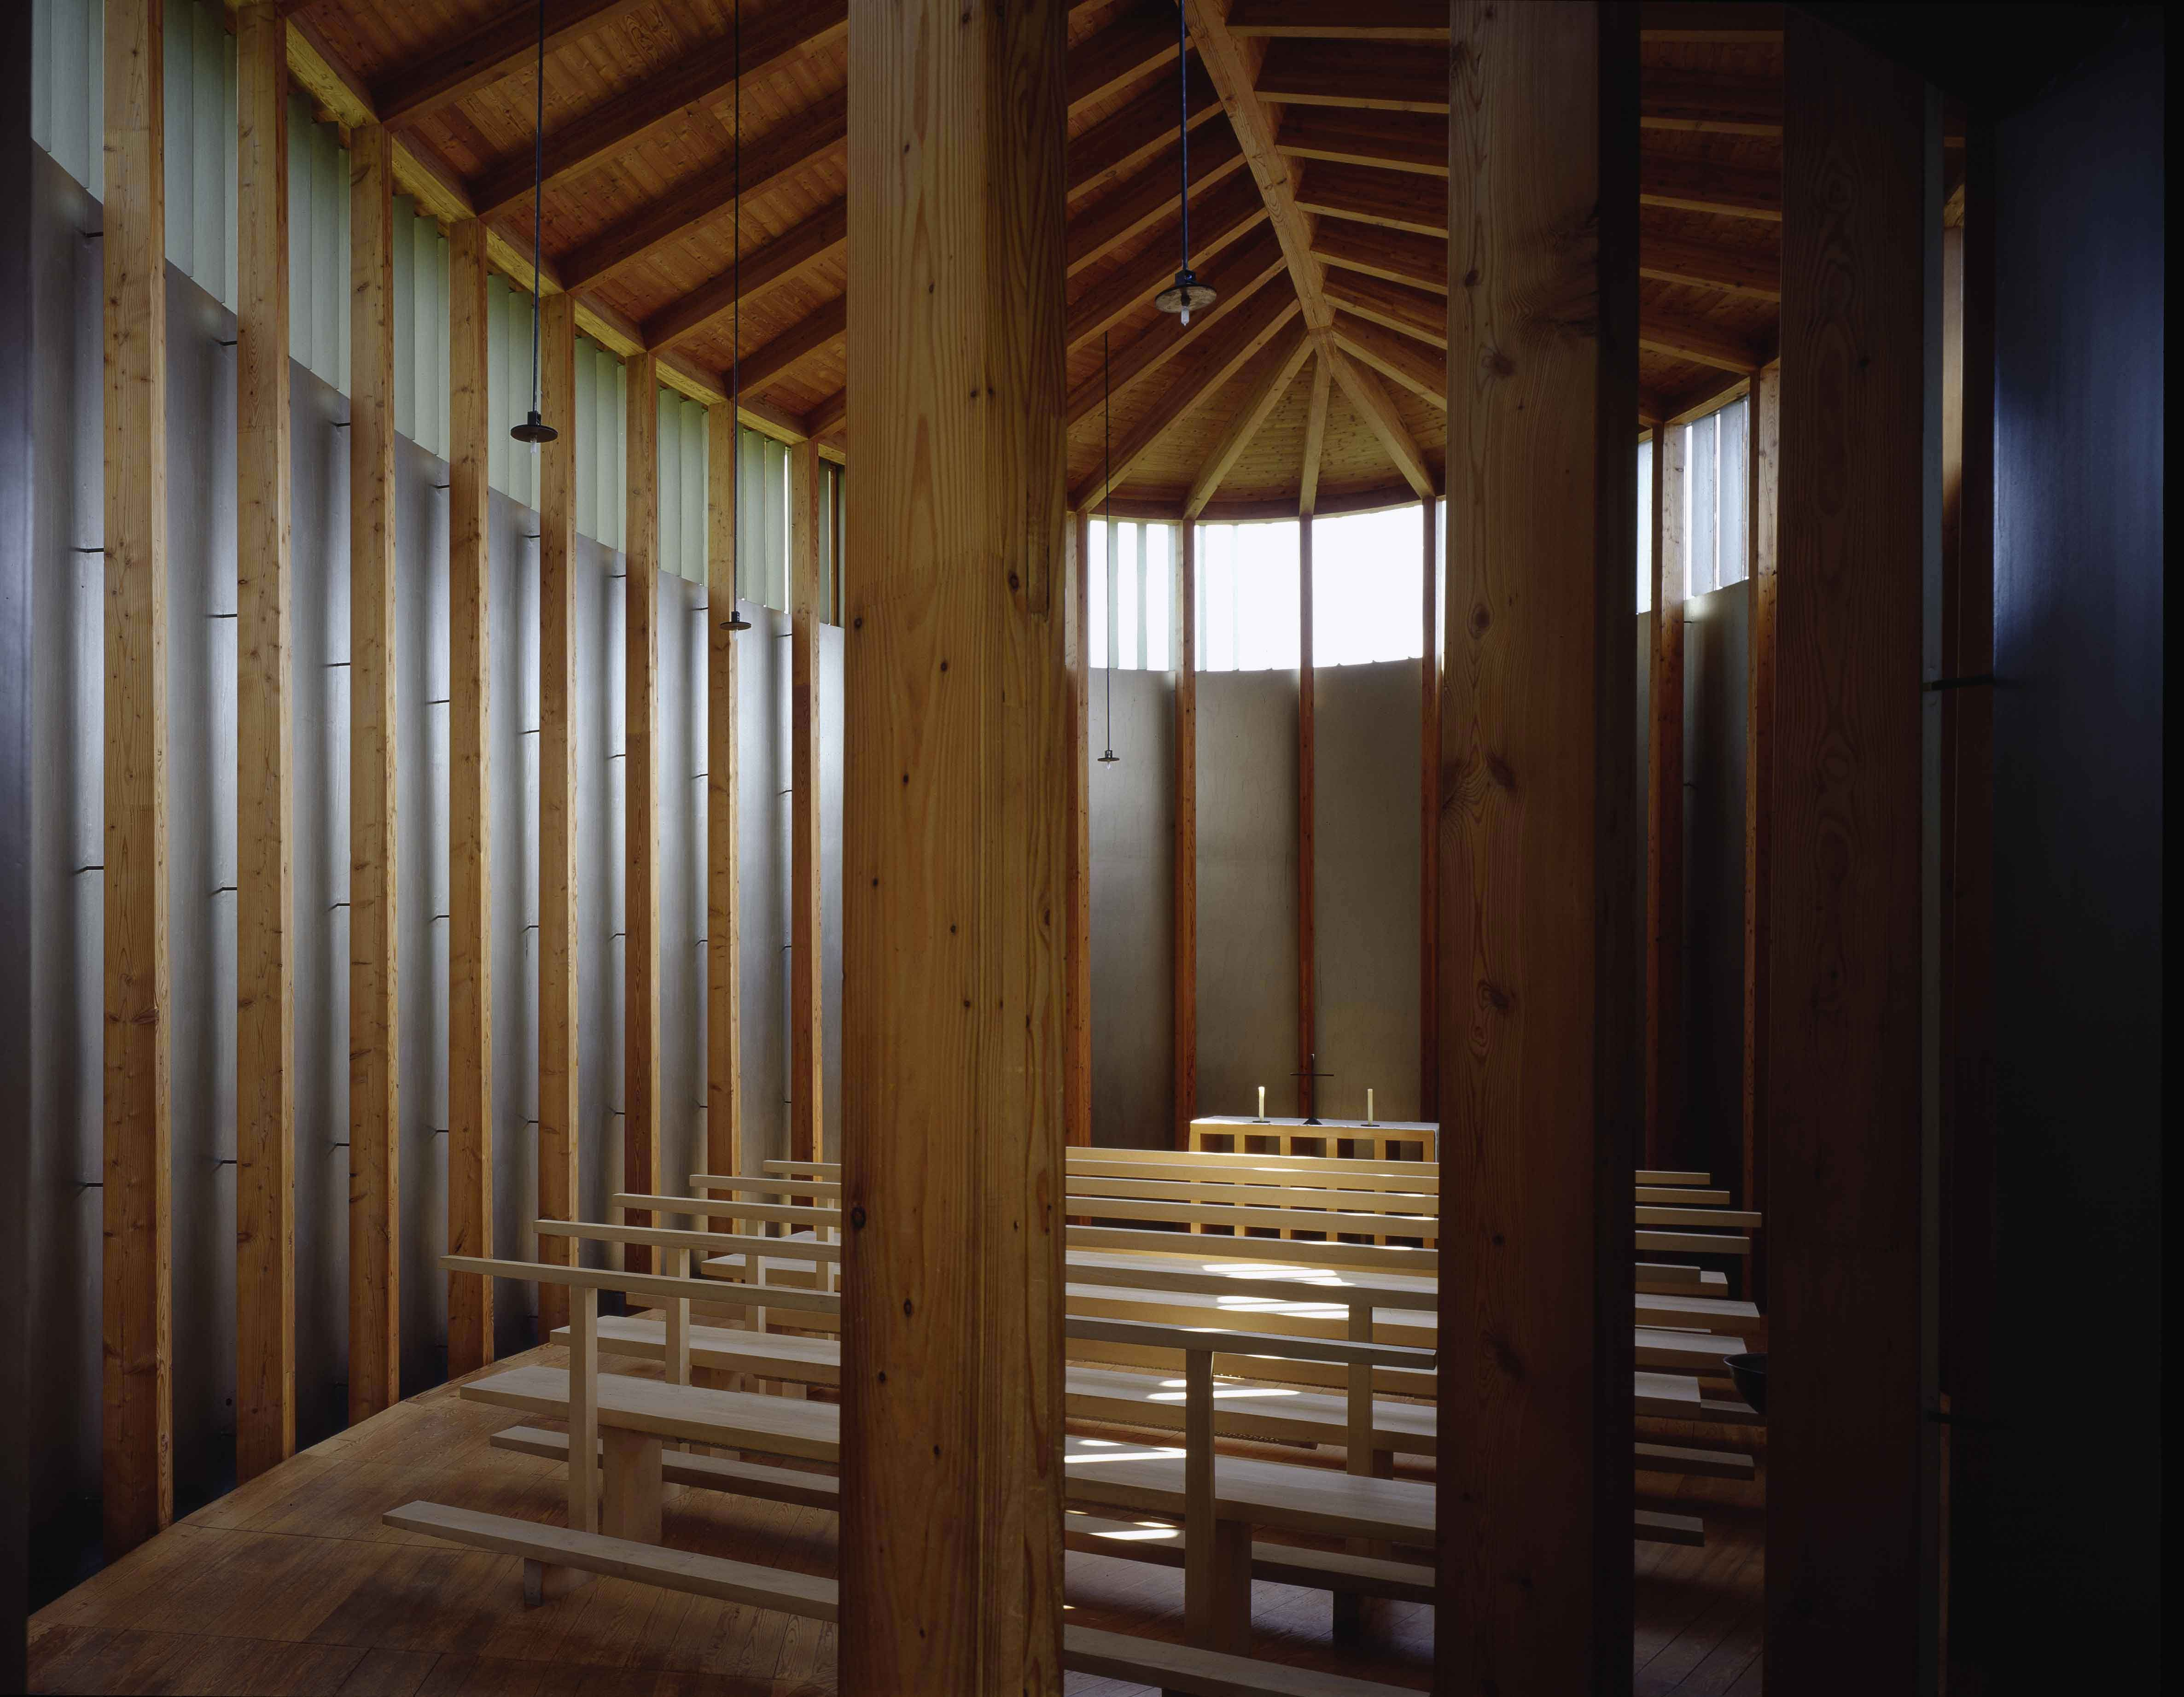 Peter Zumthor, Chapel Peter zumthor, Architecture, Wood